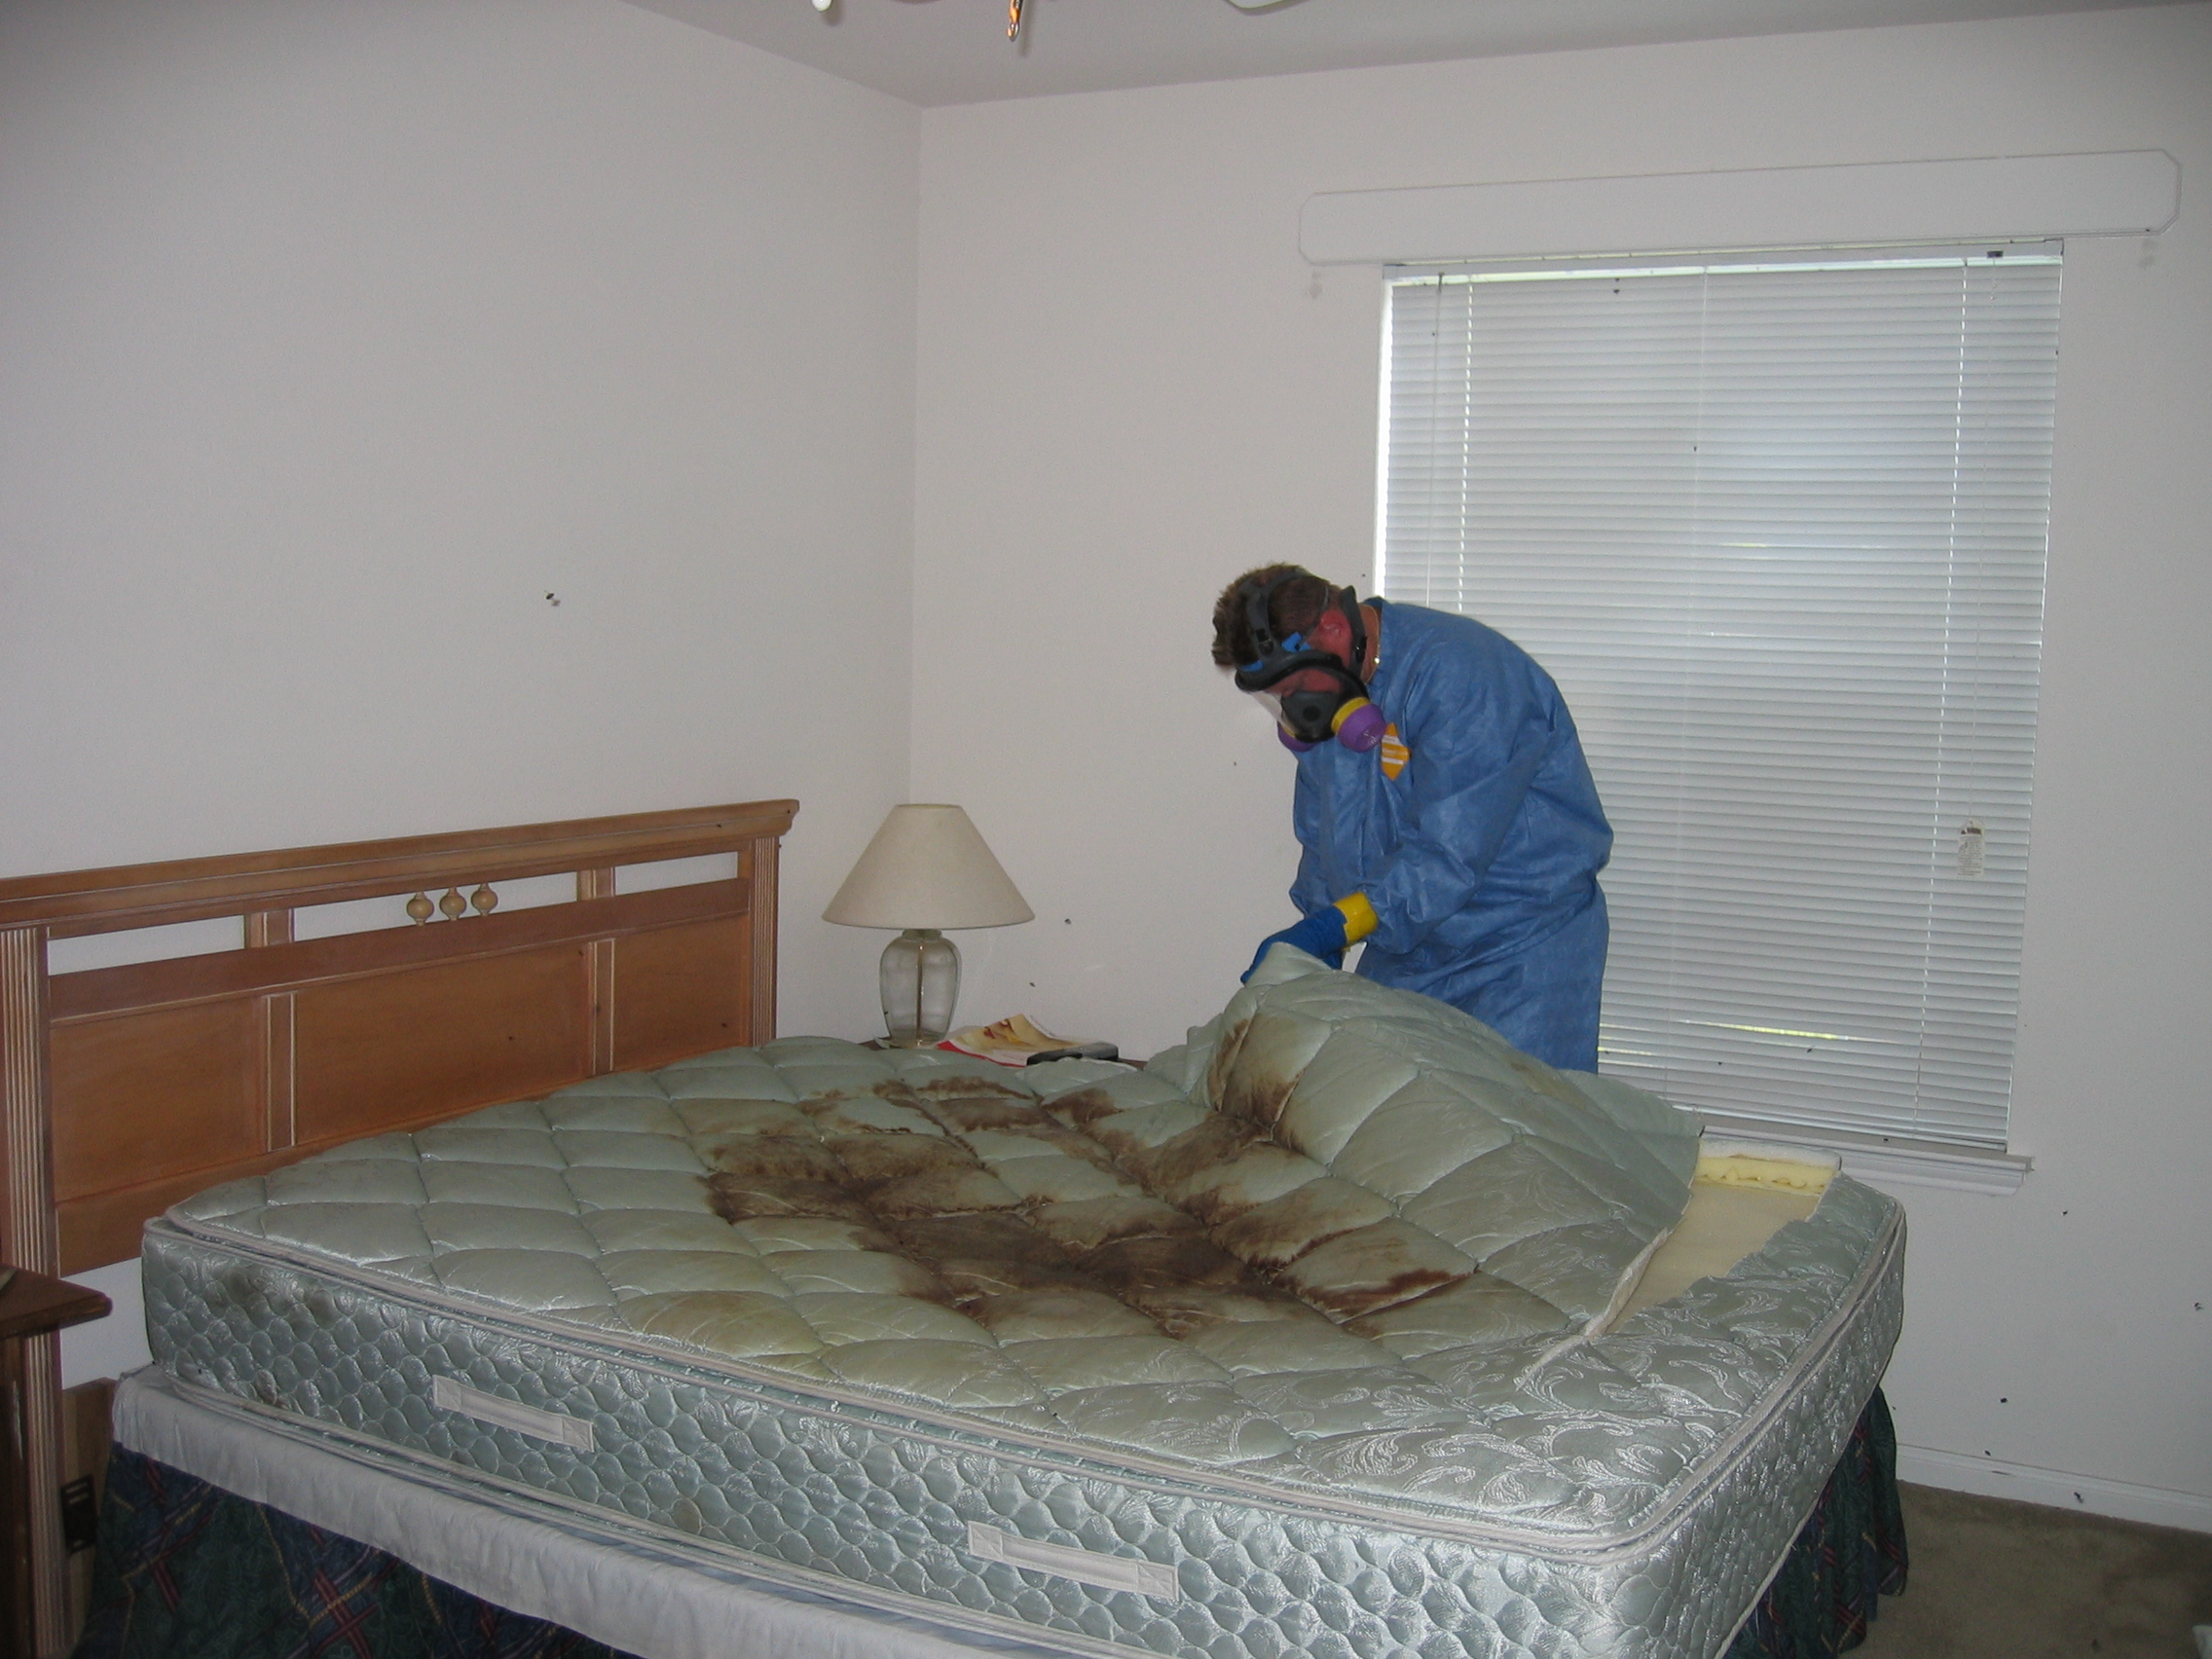 decomposition stain on mattress